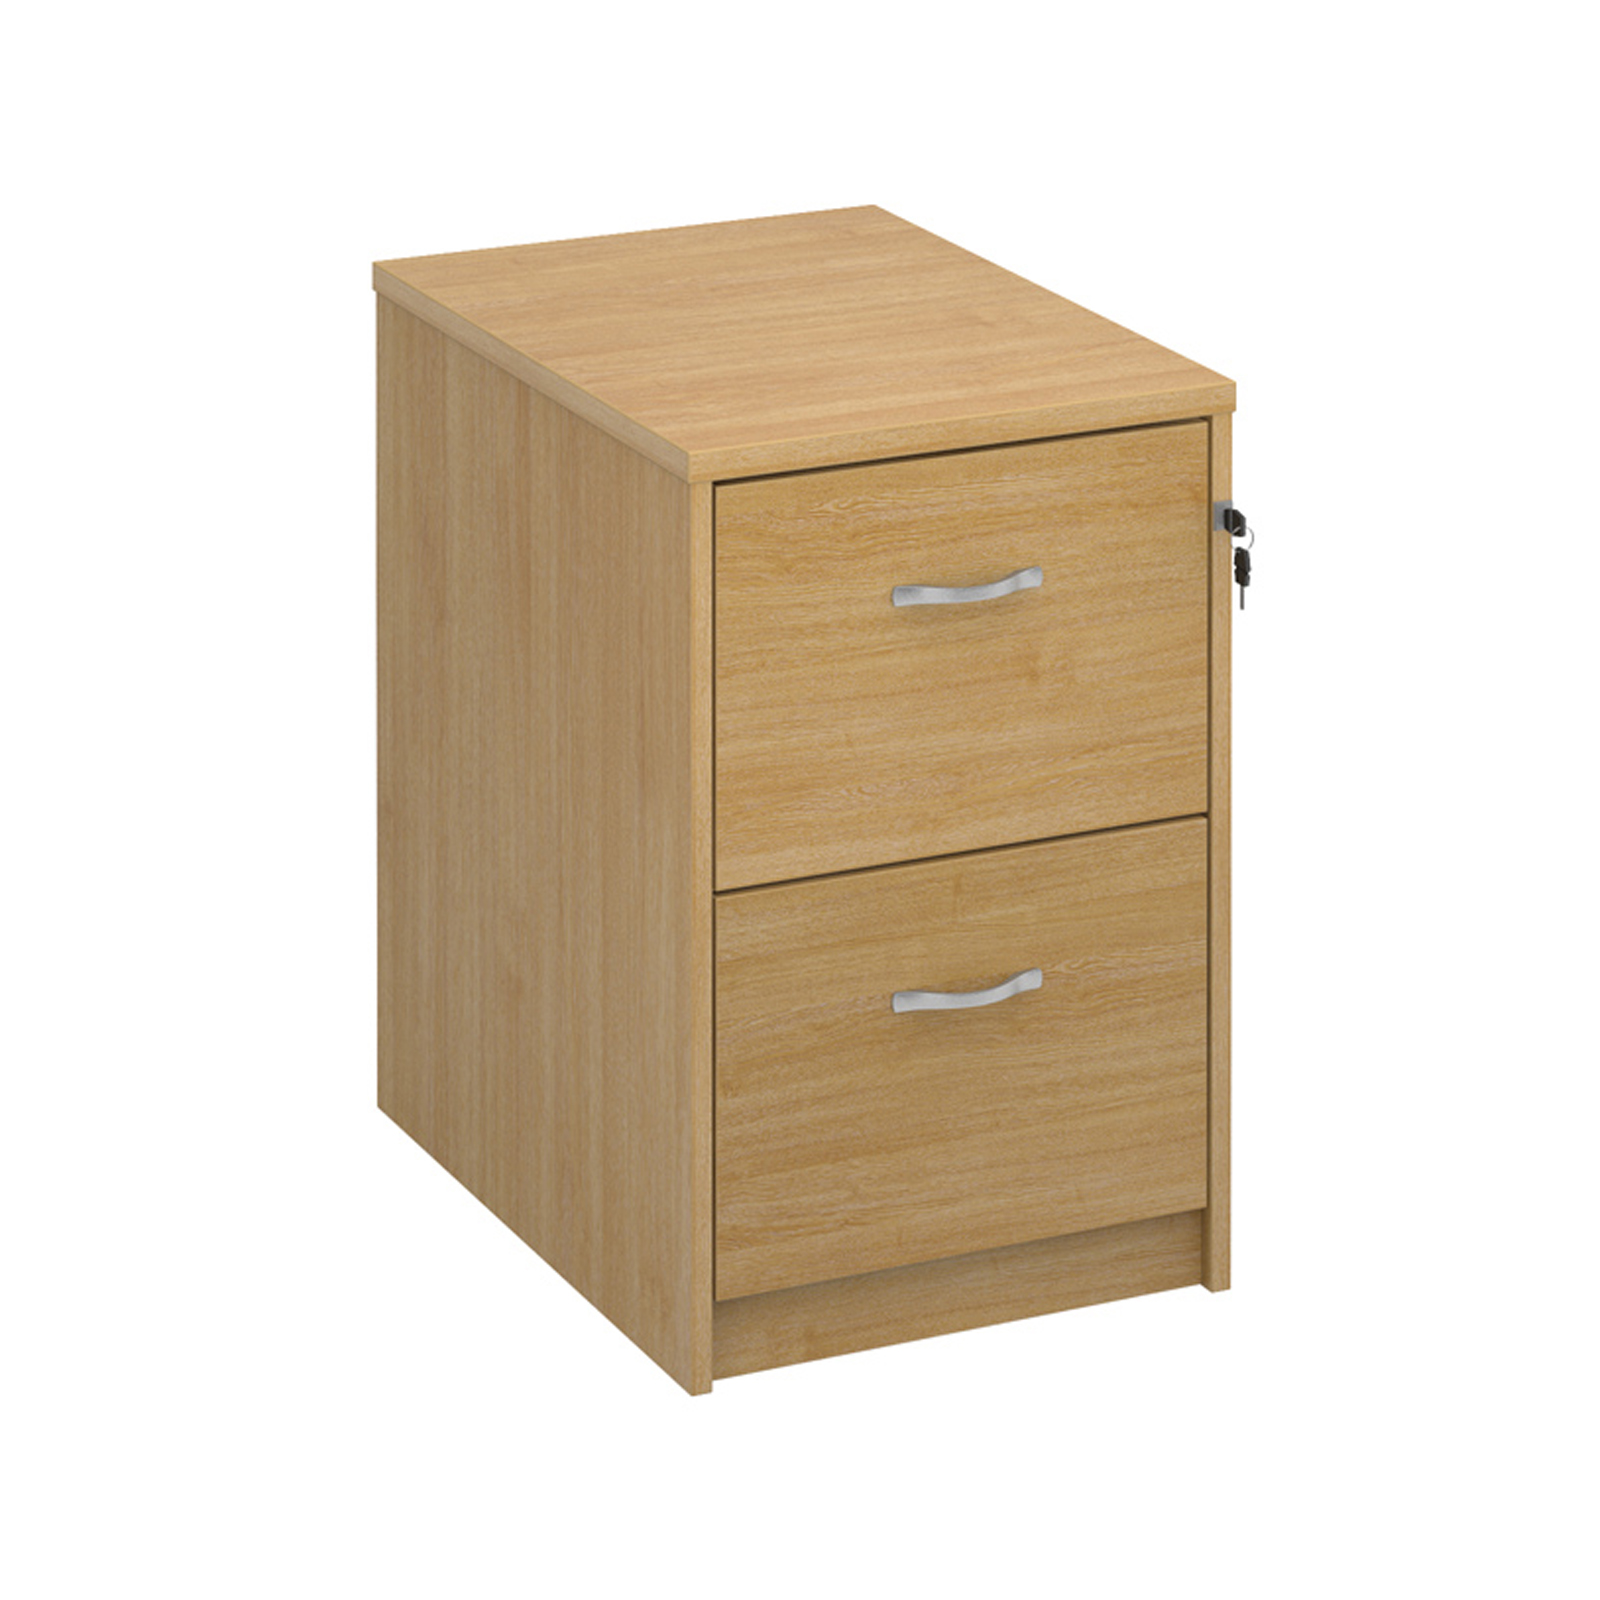 Wood Wooden 2 drawer filing cabinet with silver handles 730mm high - oak